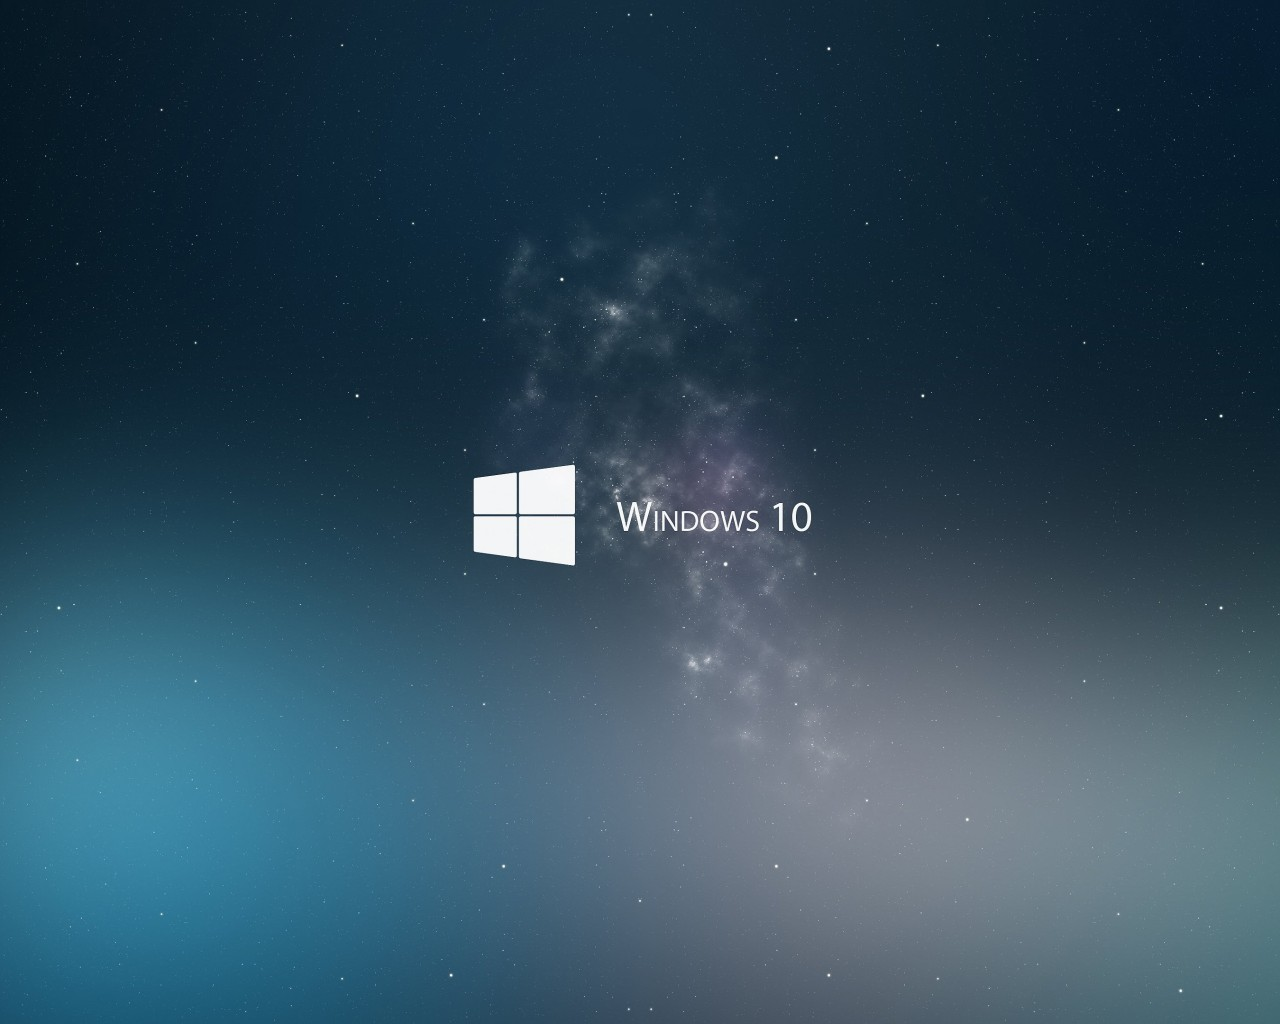 Windows 10 Wallpaper for Desktop 1280x1024